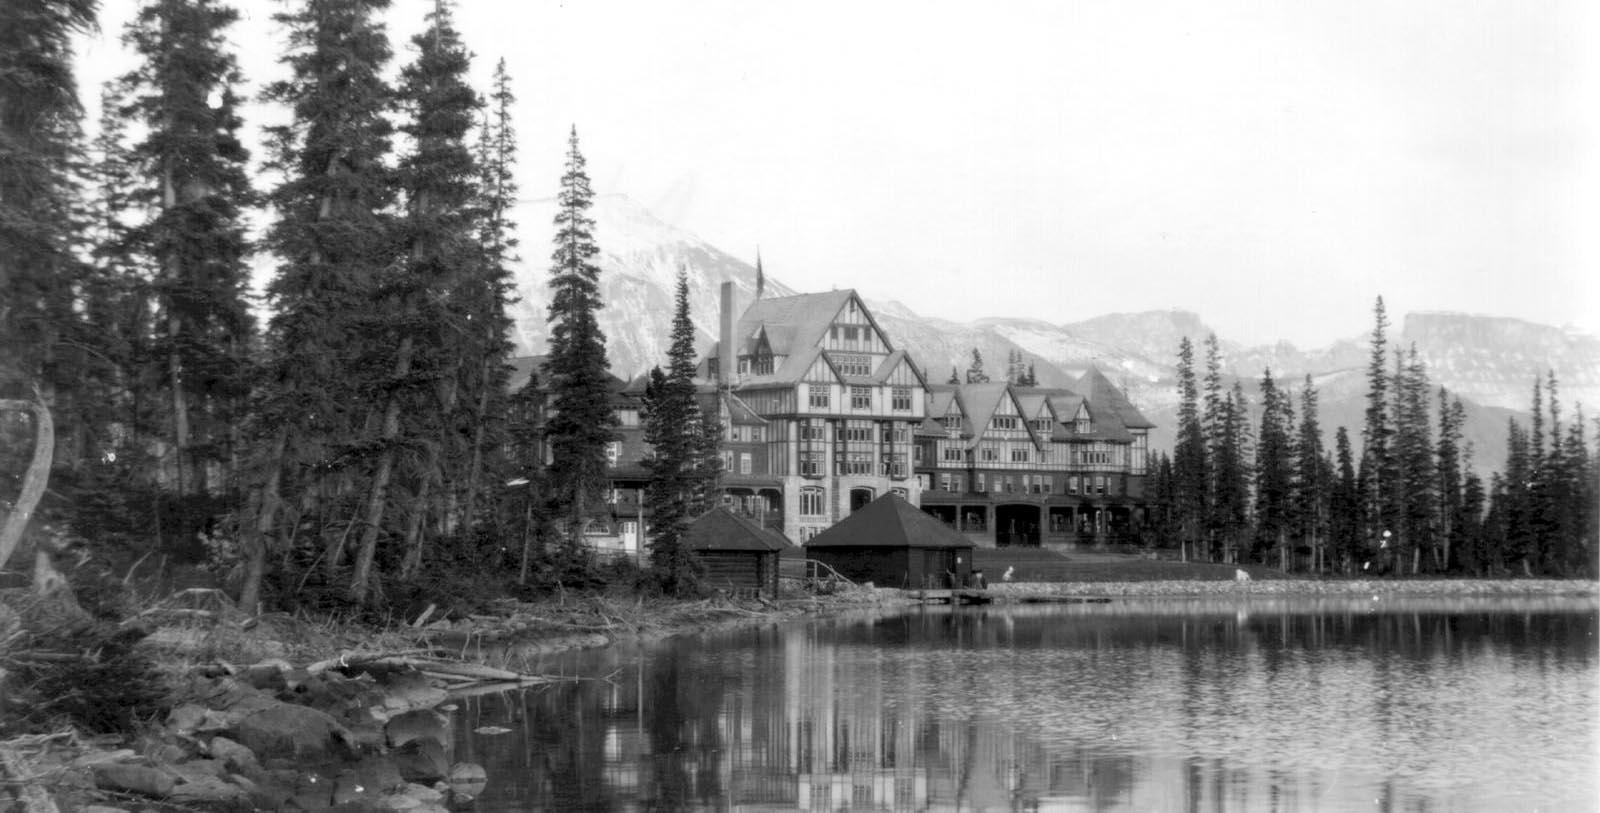 Historic image of hotel exterior Fairmont Chateau Lake Louise, 1911, Member of Historic Hotels Worldwide, in Lake Louise, Alberta, Canada, Discover